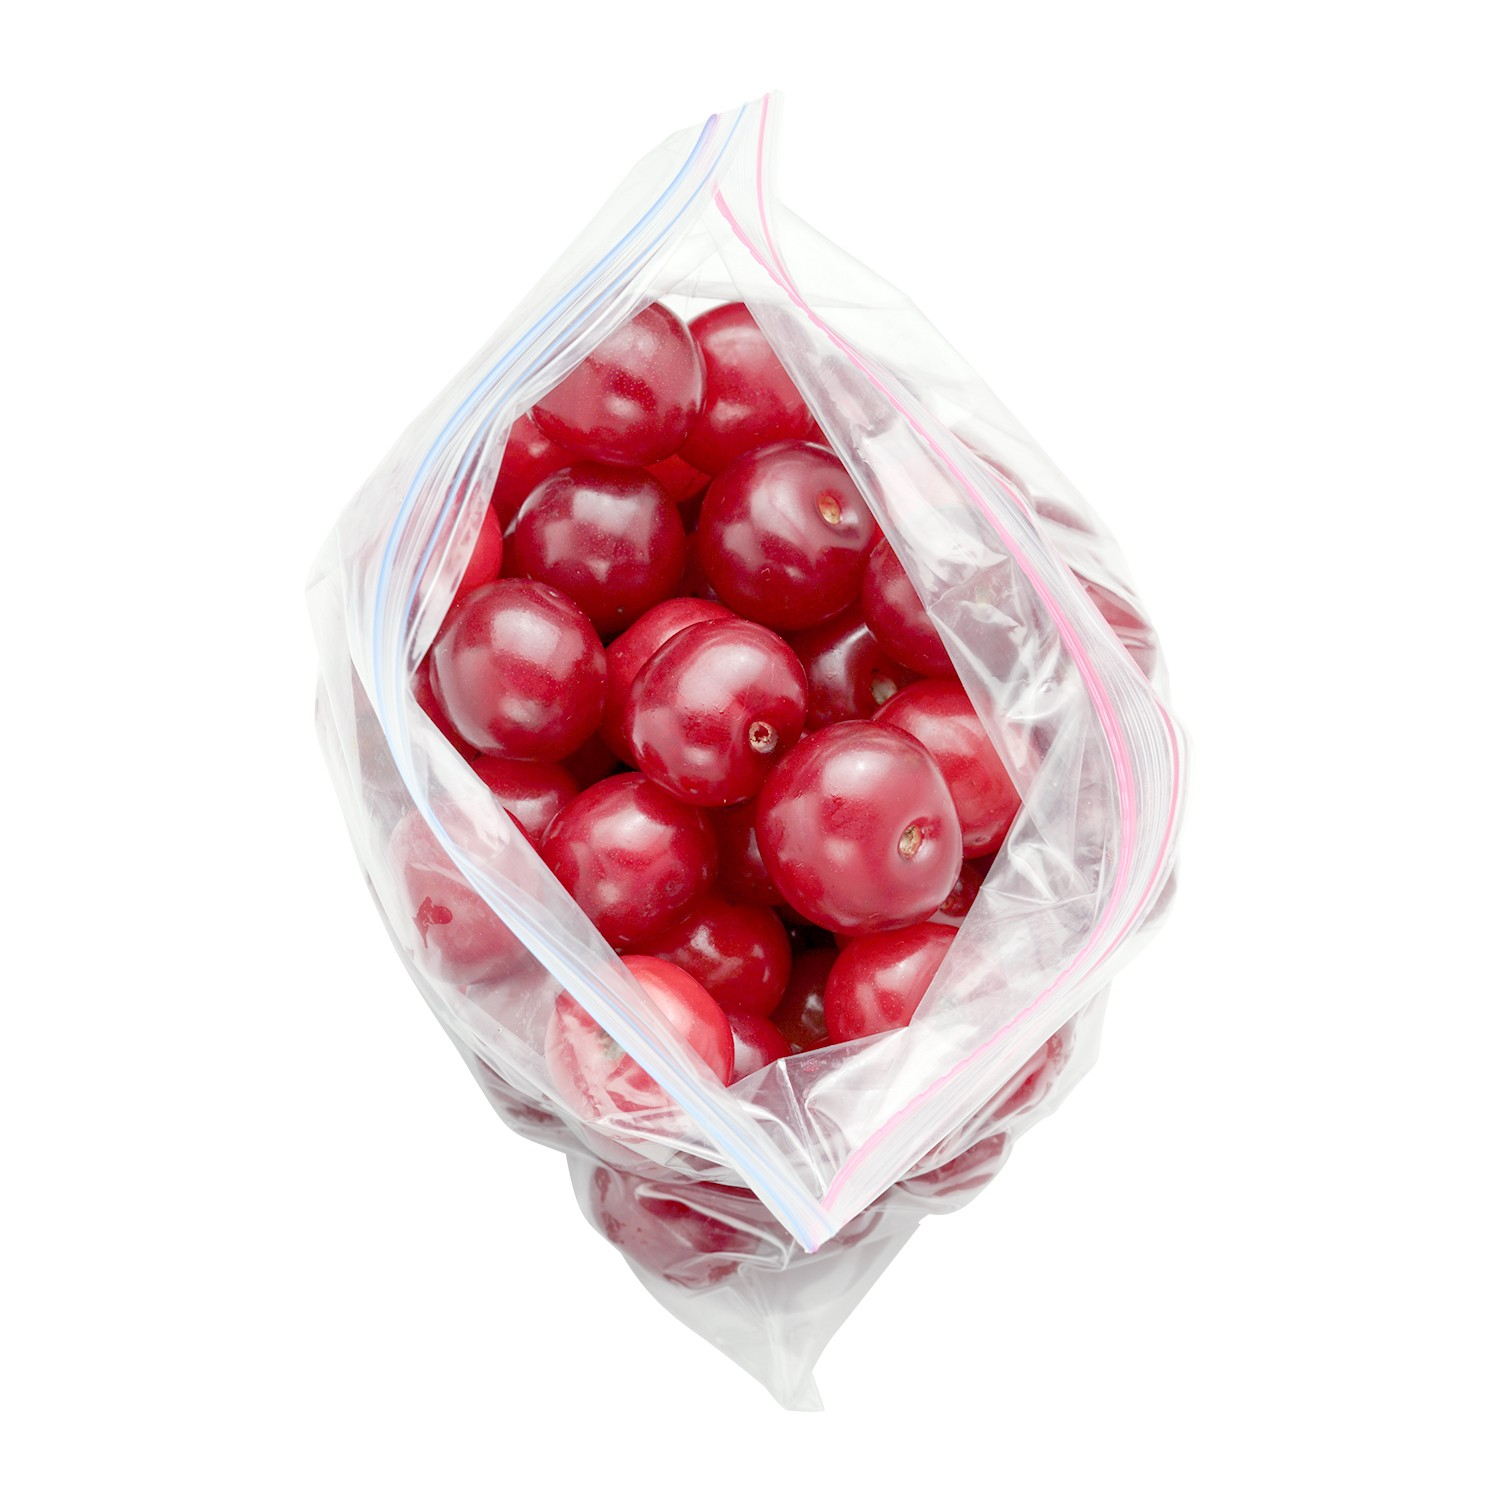 TOTALPACK® Clear Reclosable Poly Bags for Storage, Shipping, FDA Approved for Food